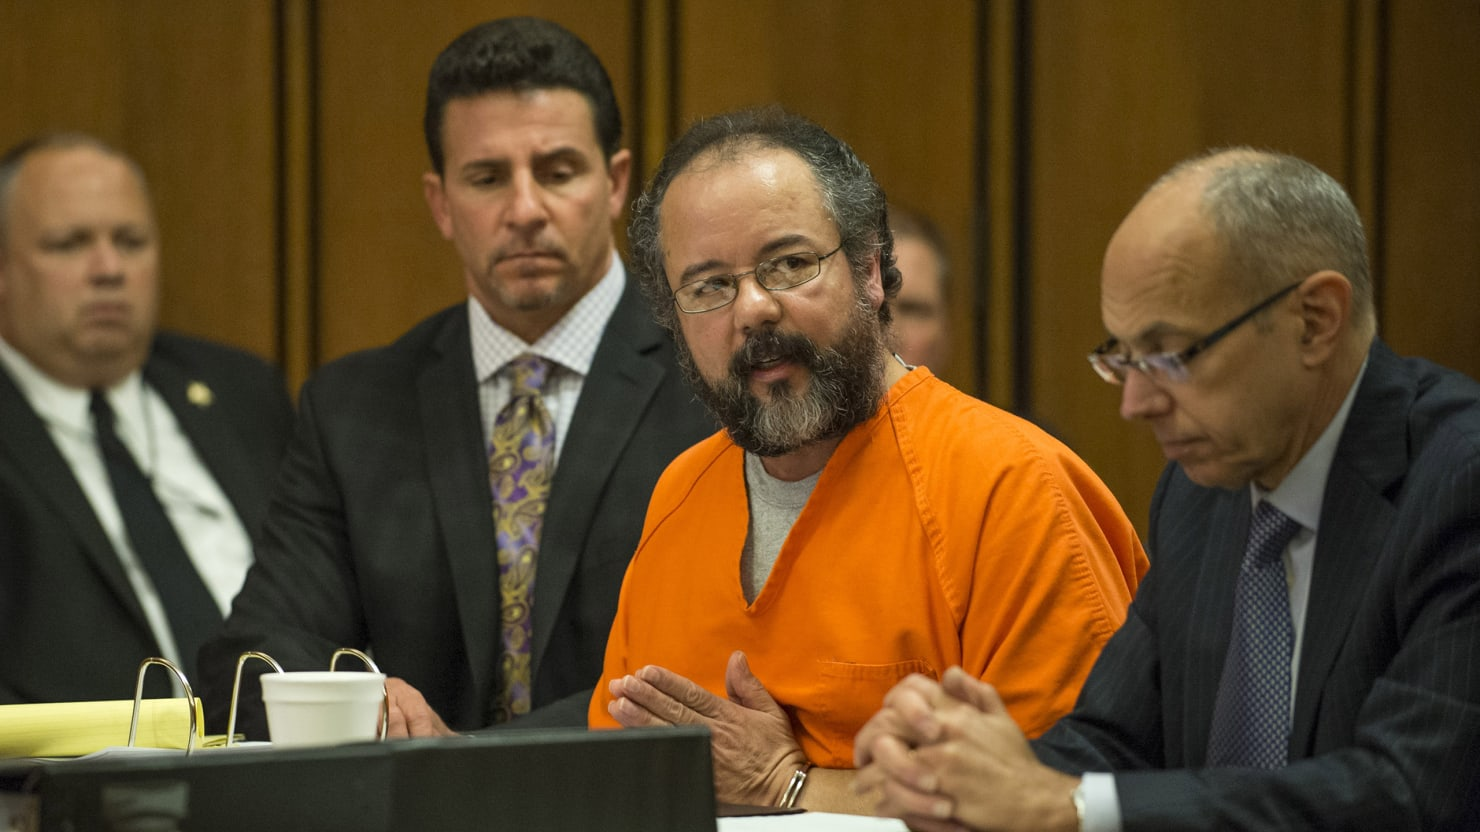 Ariel Castro Friend: 'He Felt Bad for What He Did'